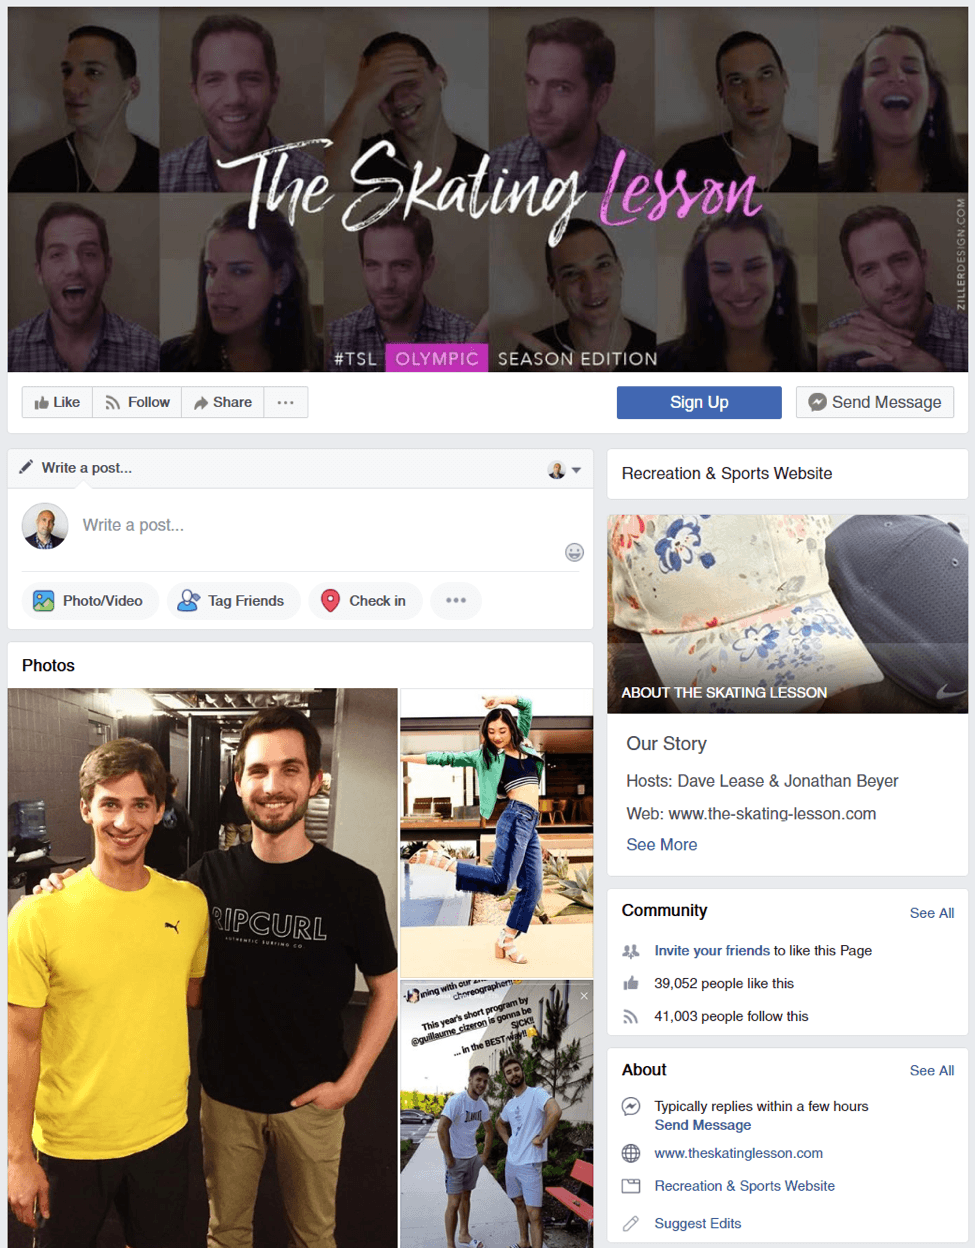 The Skating Lesson Facebook Page